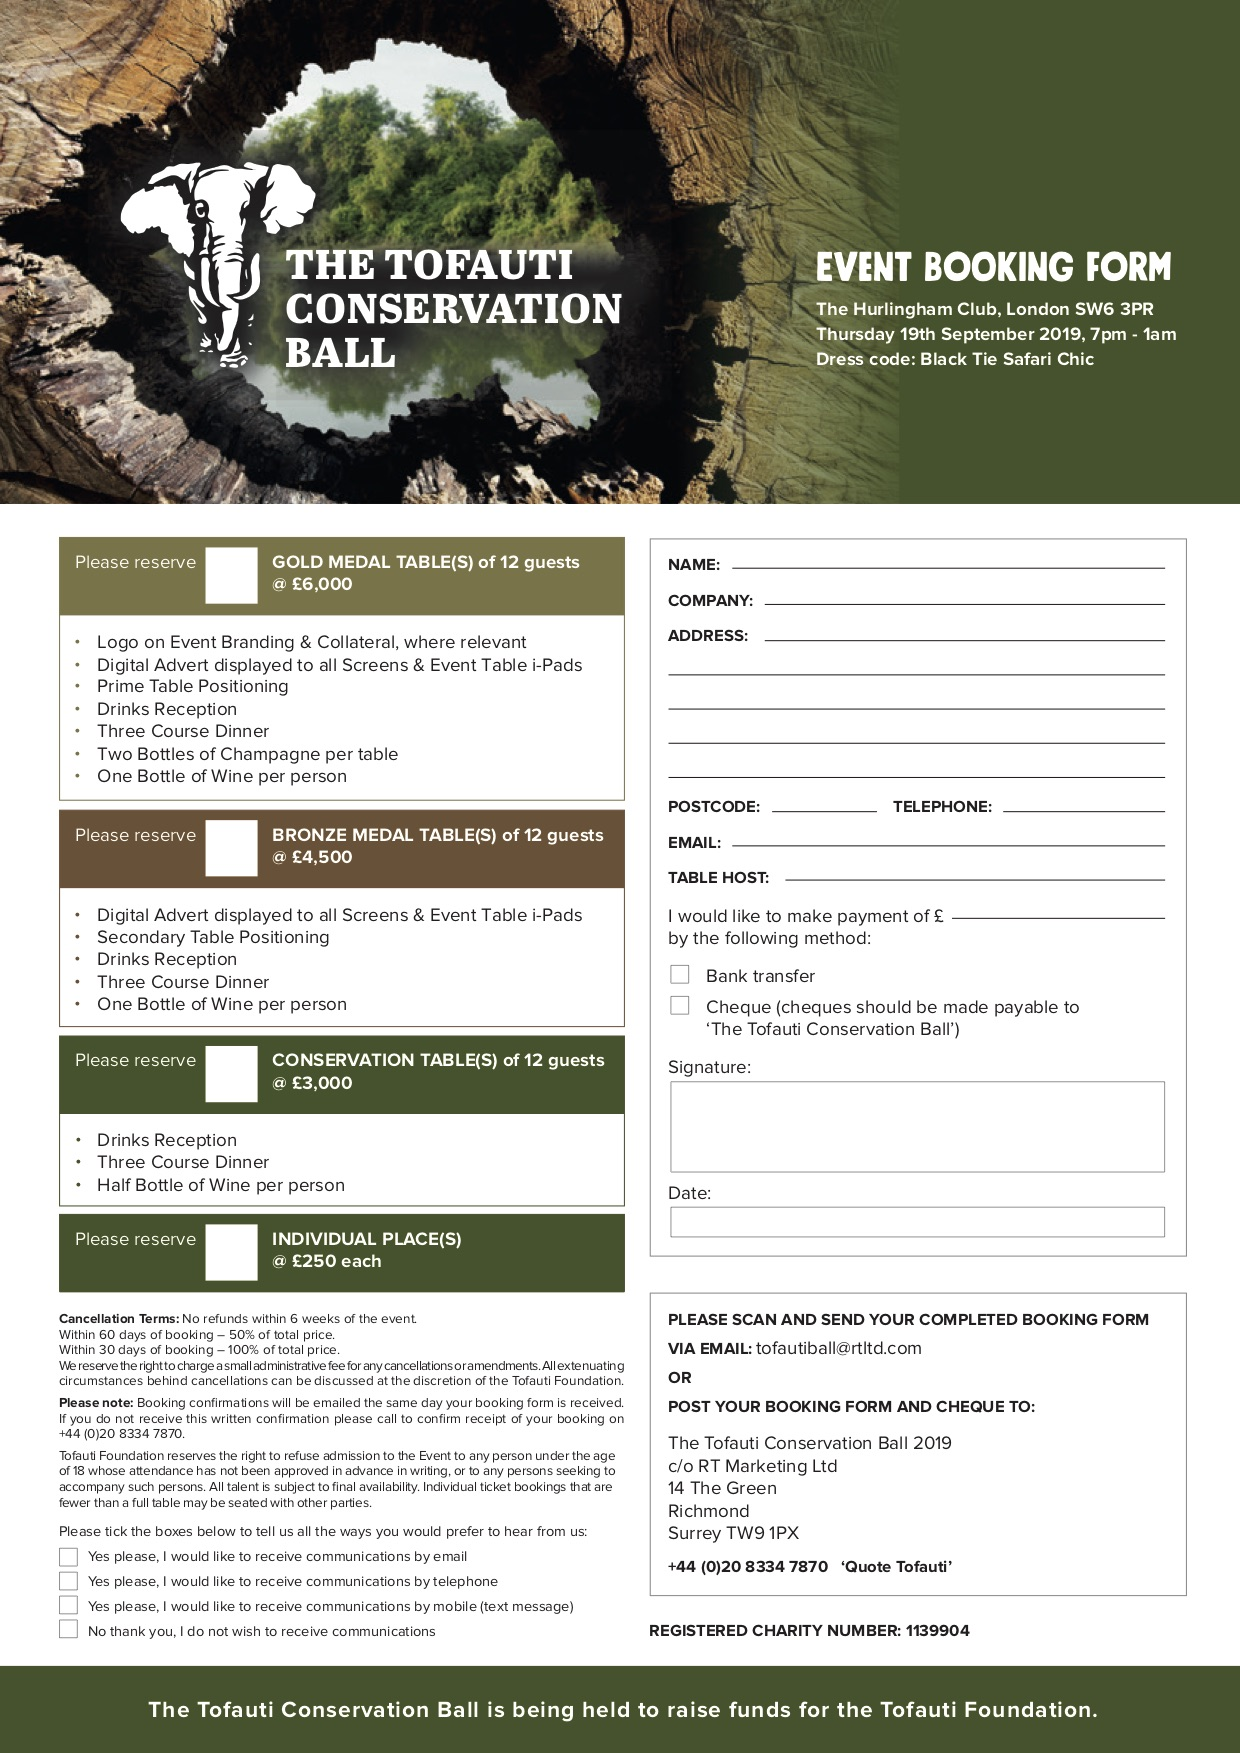 Tofauti Conservation Ball Booking Form 2019 - July.jpg